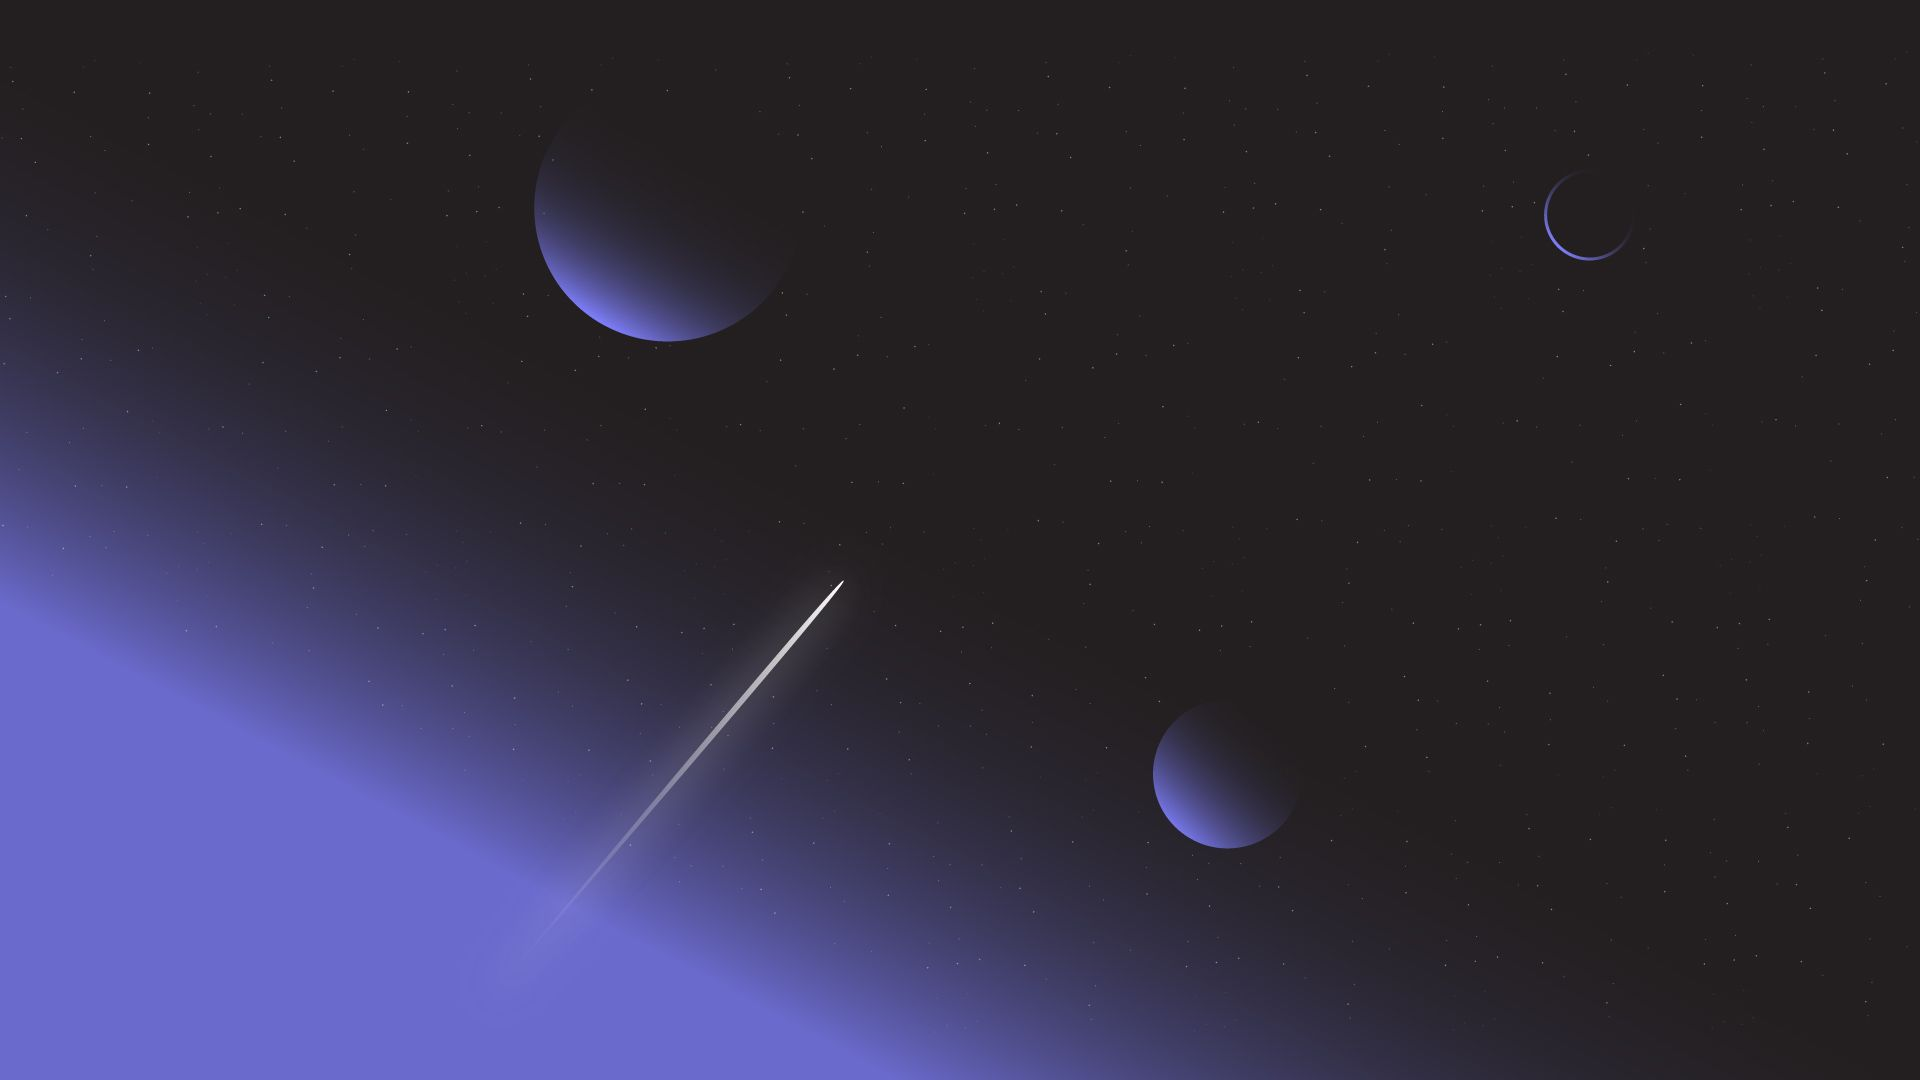 Space Minimalist Wallpapers - Wallpaper Cave